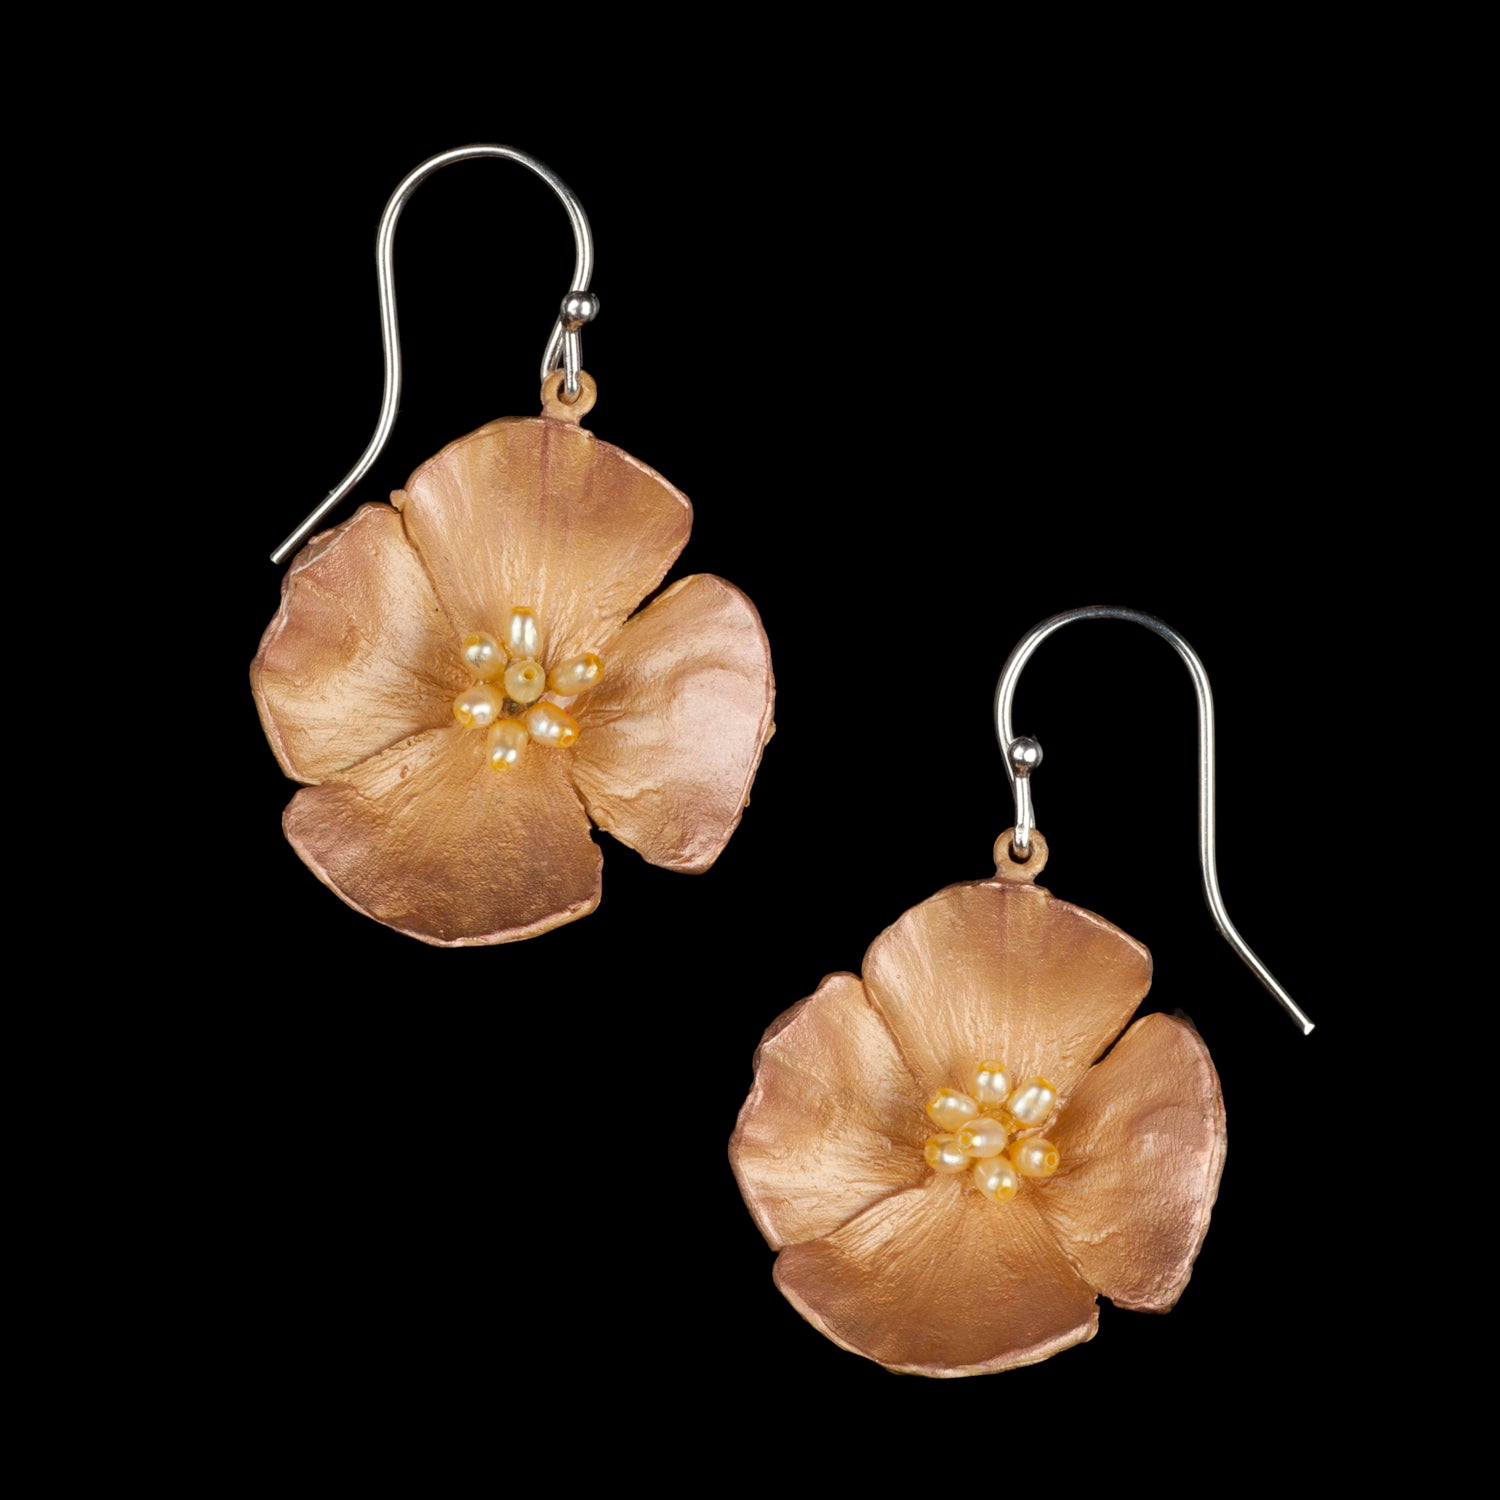 California Poppy Earrings - Large Flower